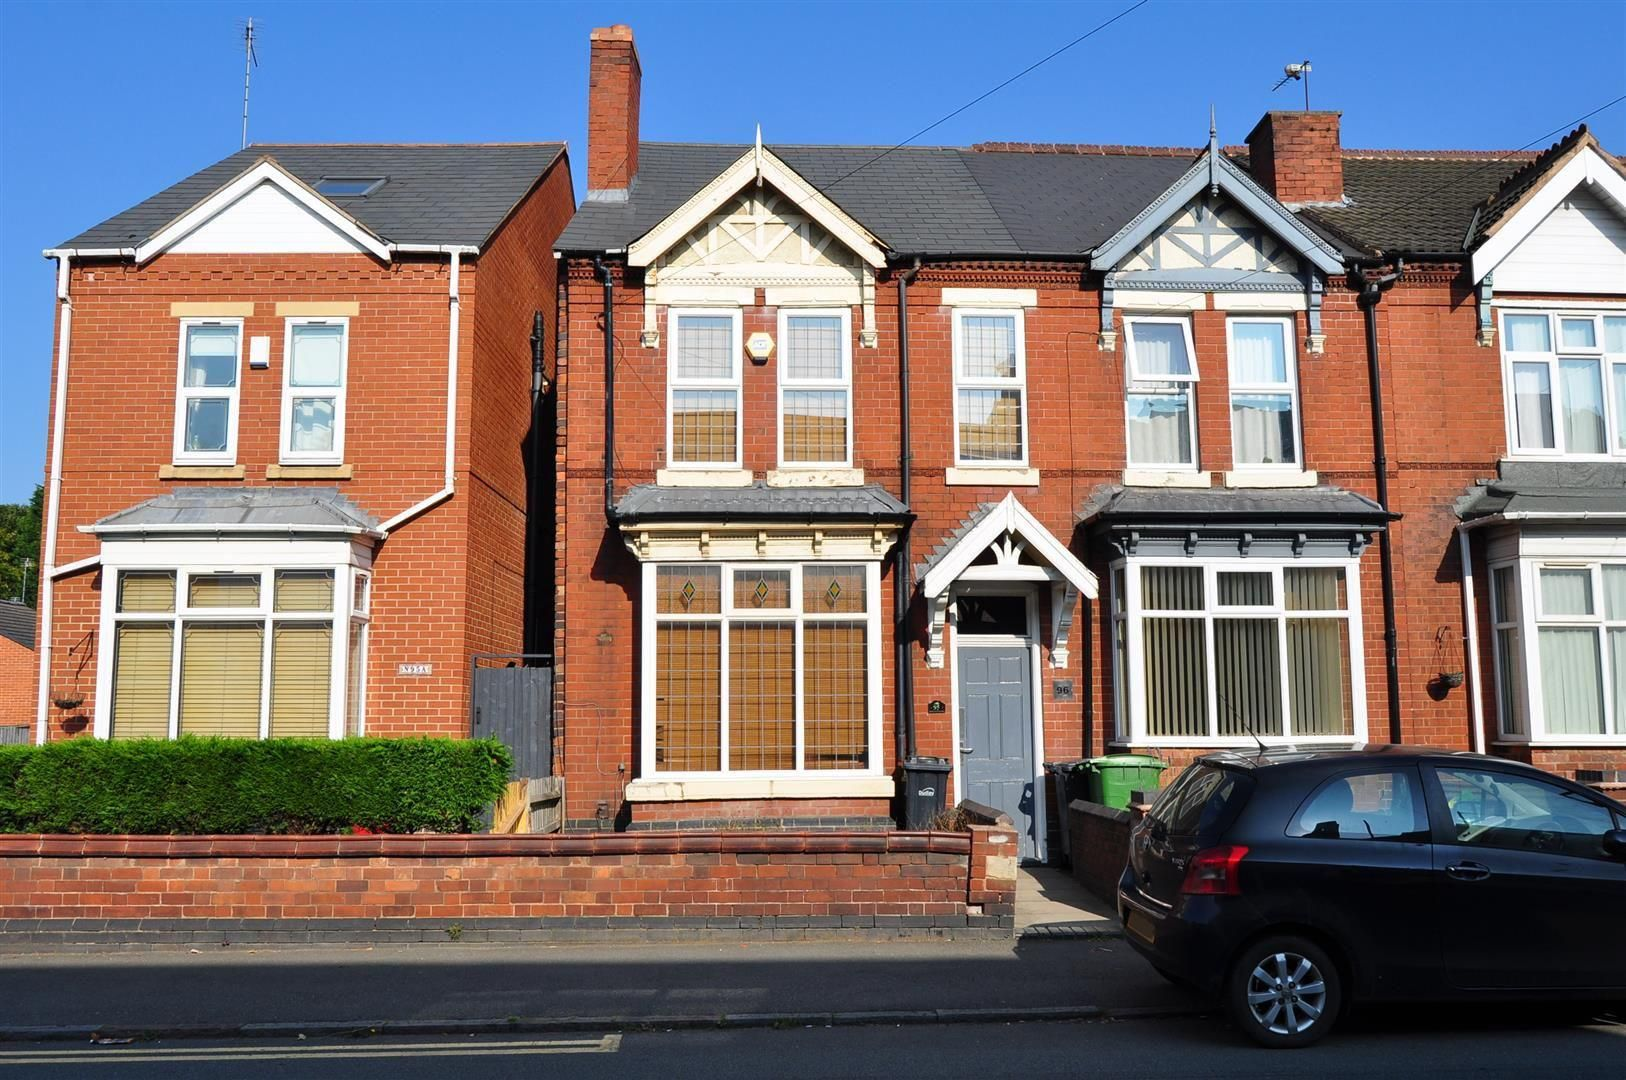 2 bed end-of-terrace for sale 16